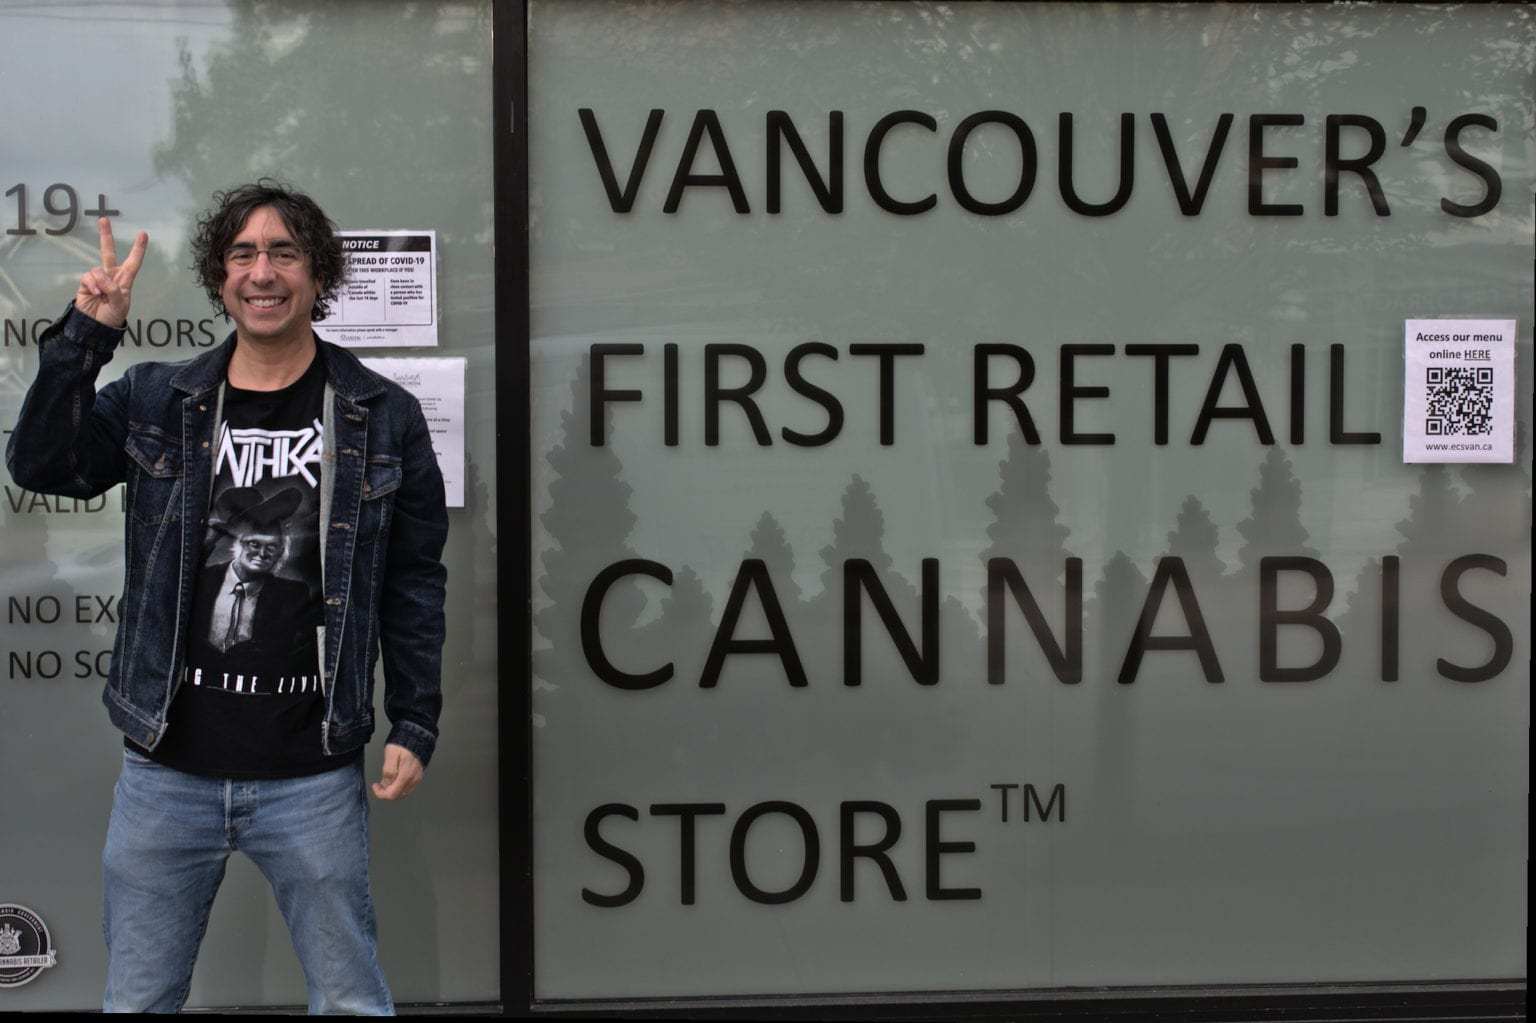 Evergreen Cannabis co-owner Mike Babins